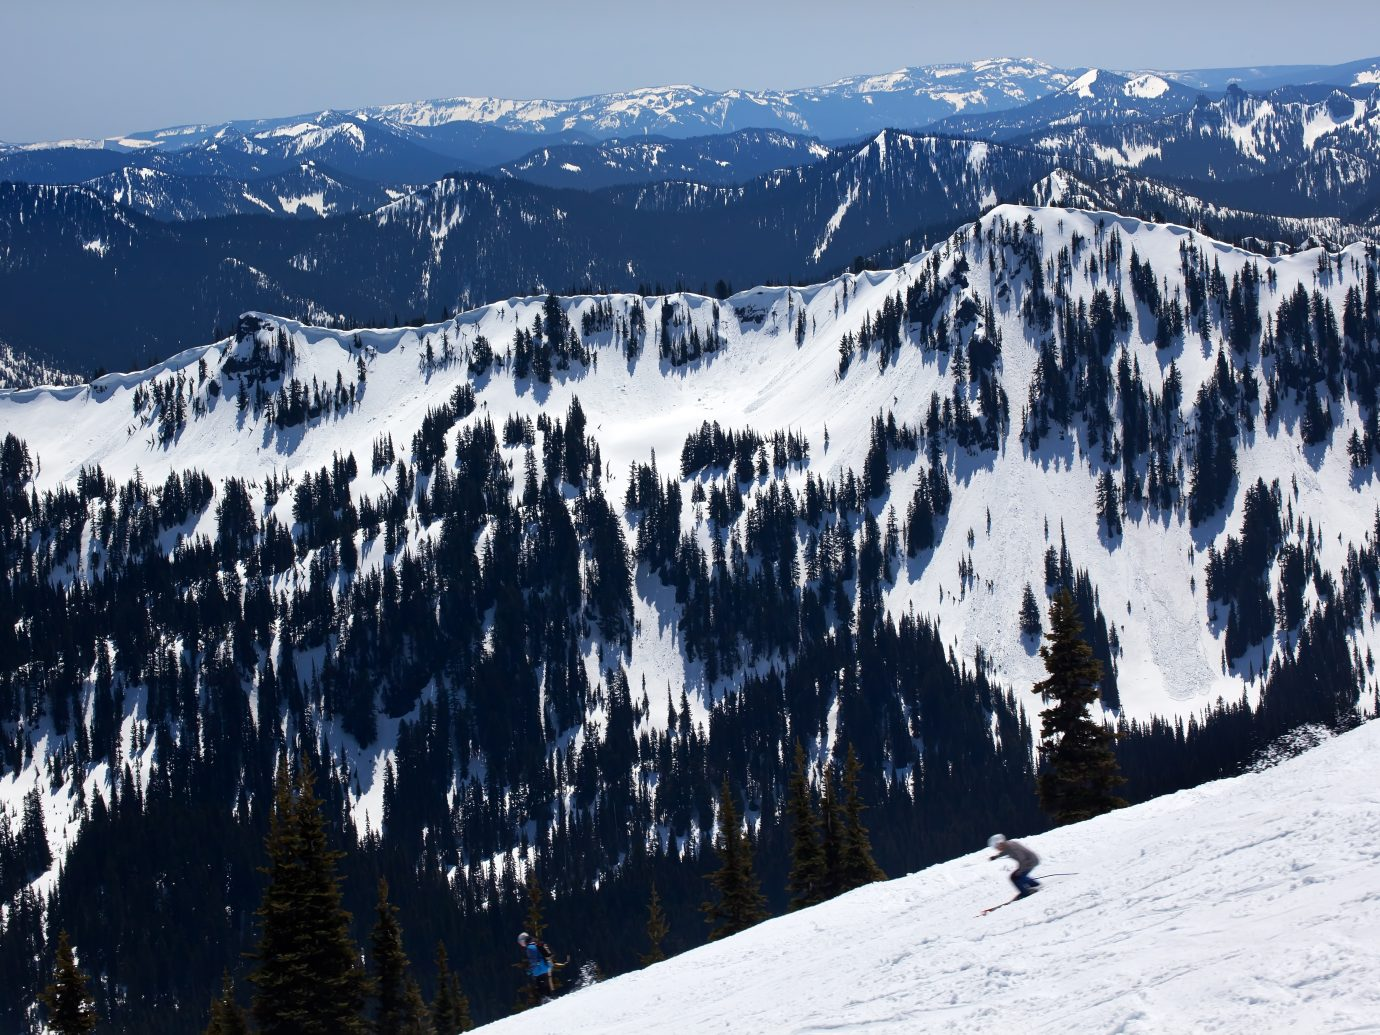 Man skiing on a snowy scape at Crystal Mountain